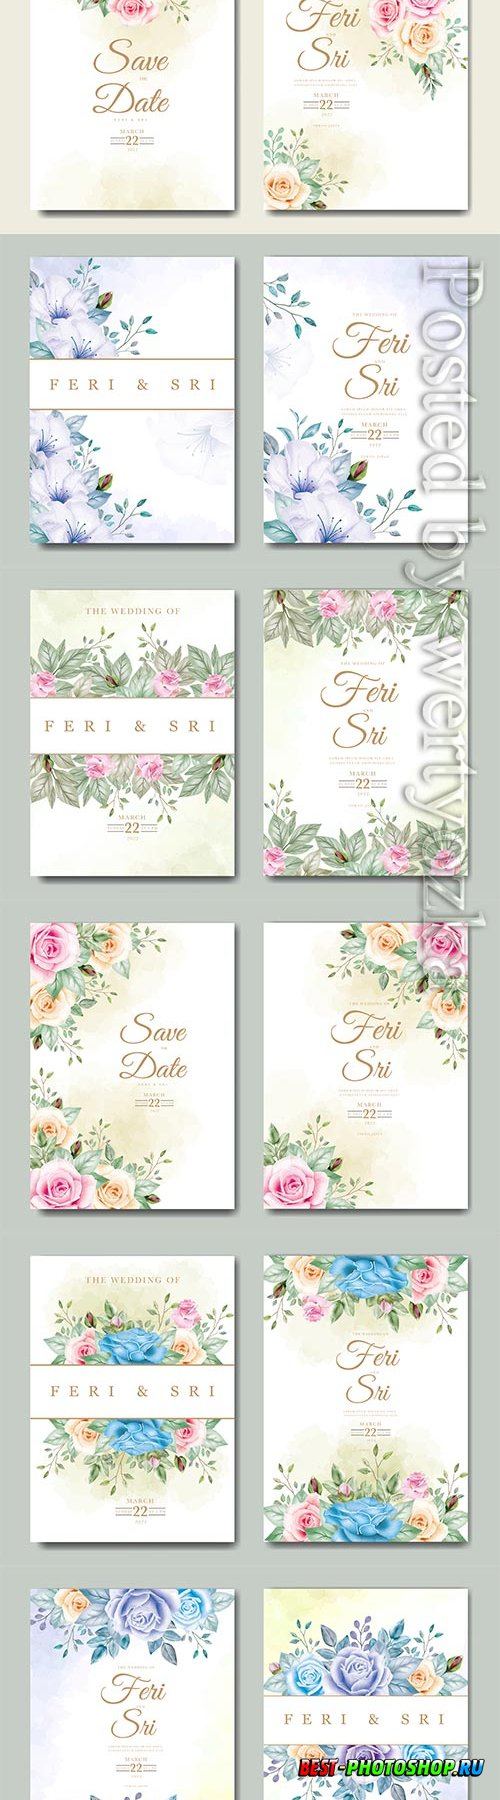 Beautiful wedding invitation vector card with floral watercolor